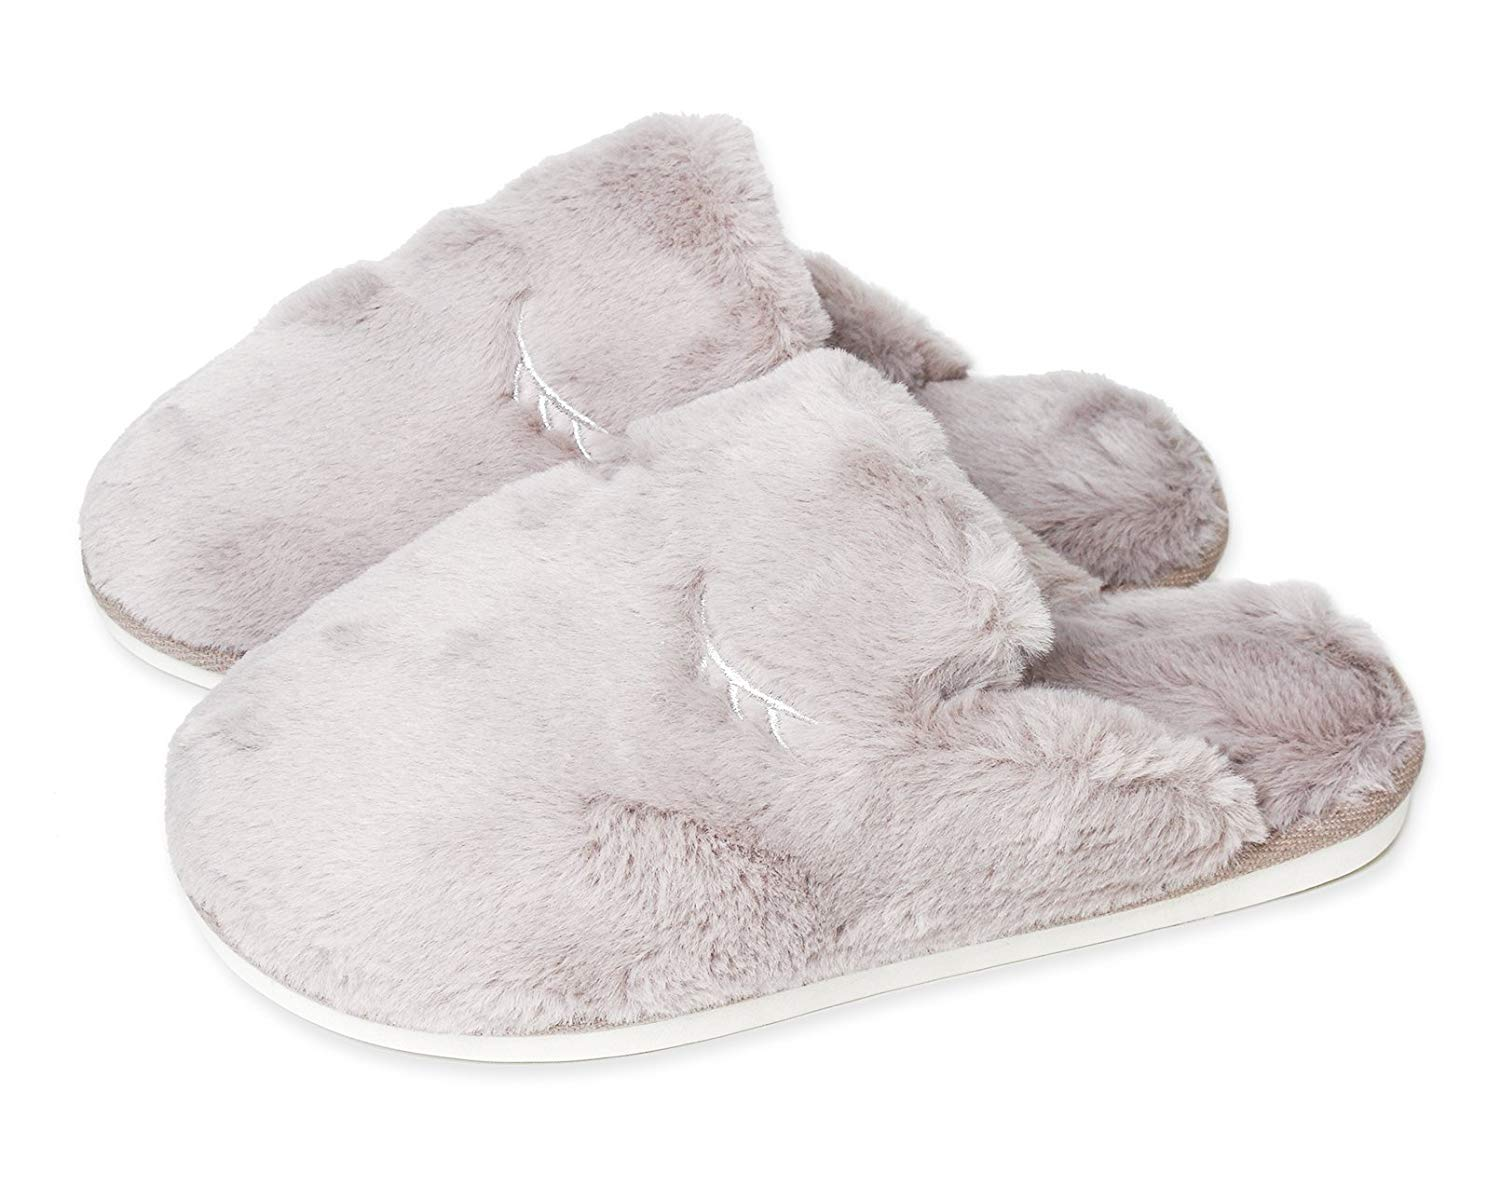 bfde9fb02801d Furry Slippers for Women – Comfy Fuzzy Fluffy Slip On, Cozy Indoor House  Slippers,